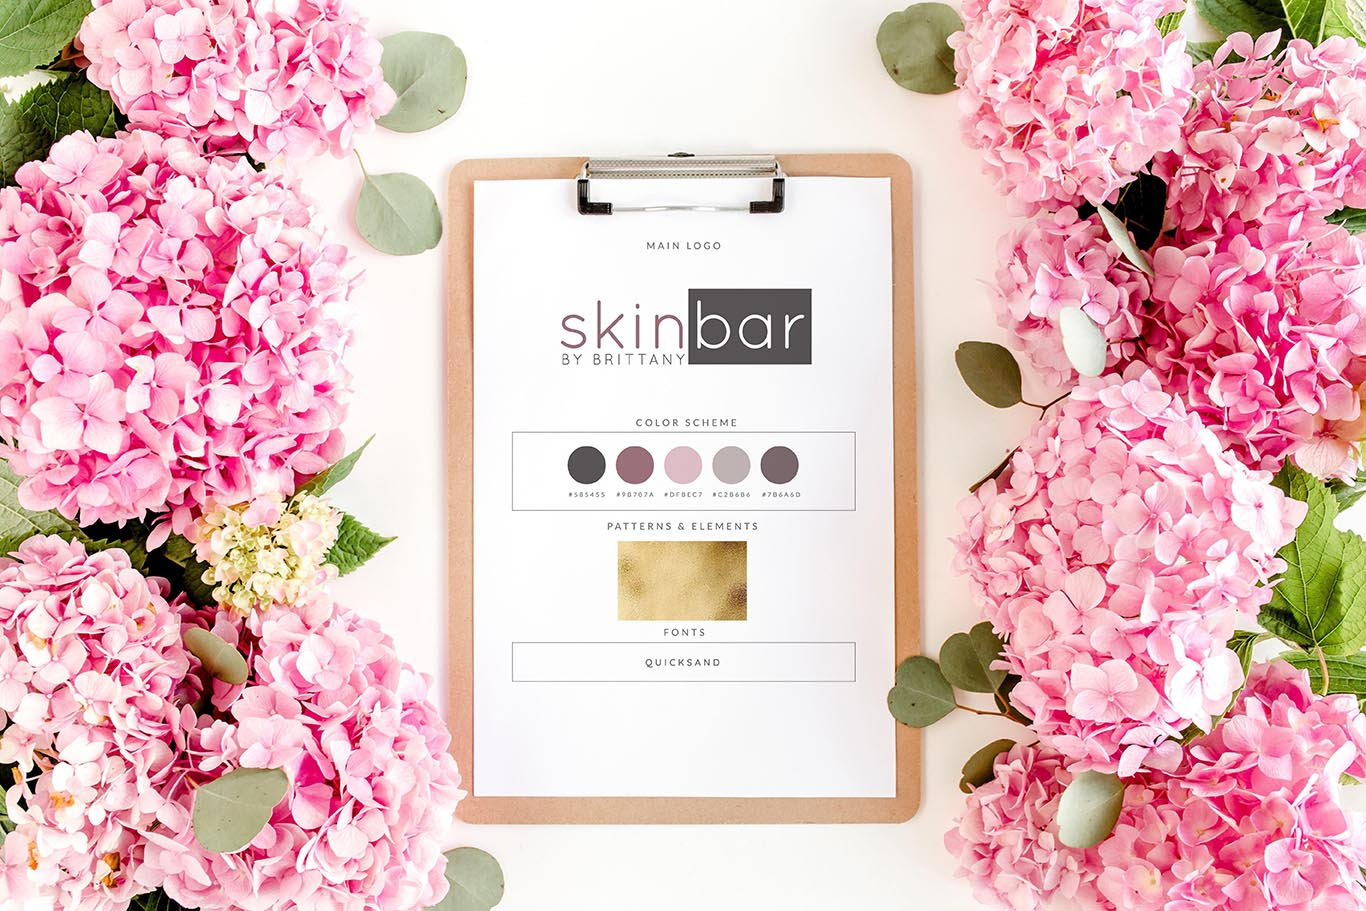 leanne and company skin bar brand design